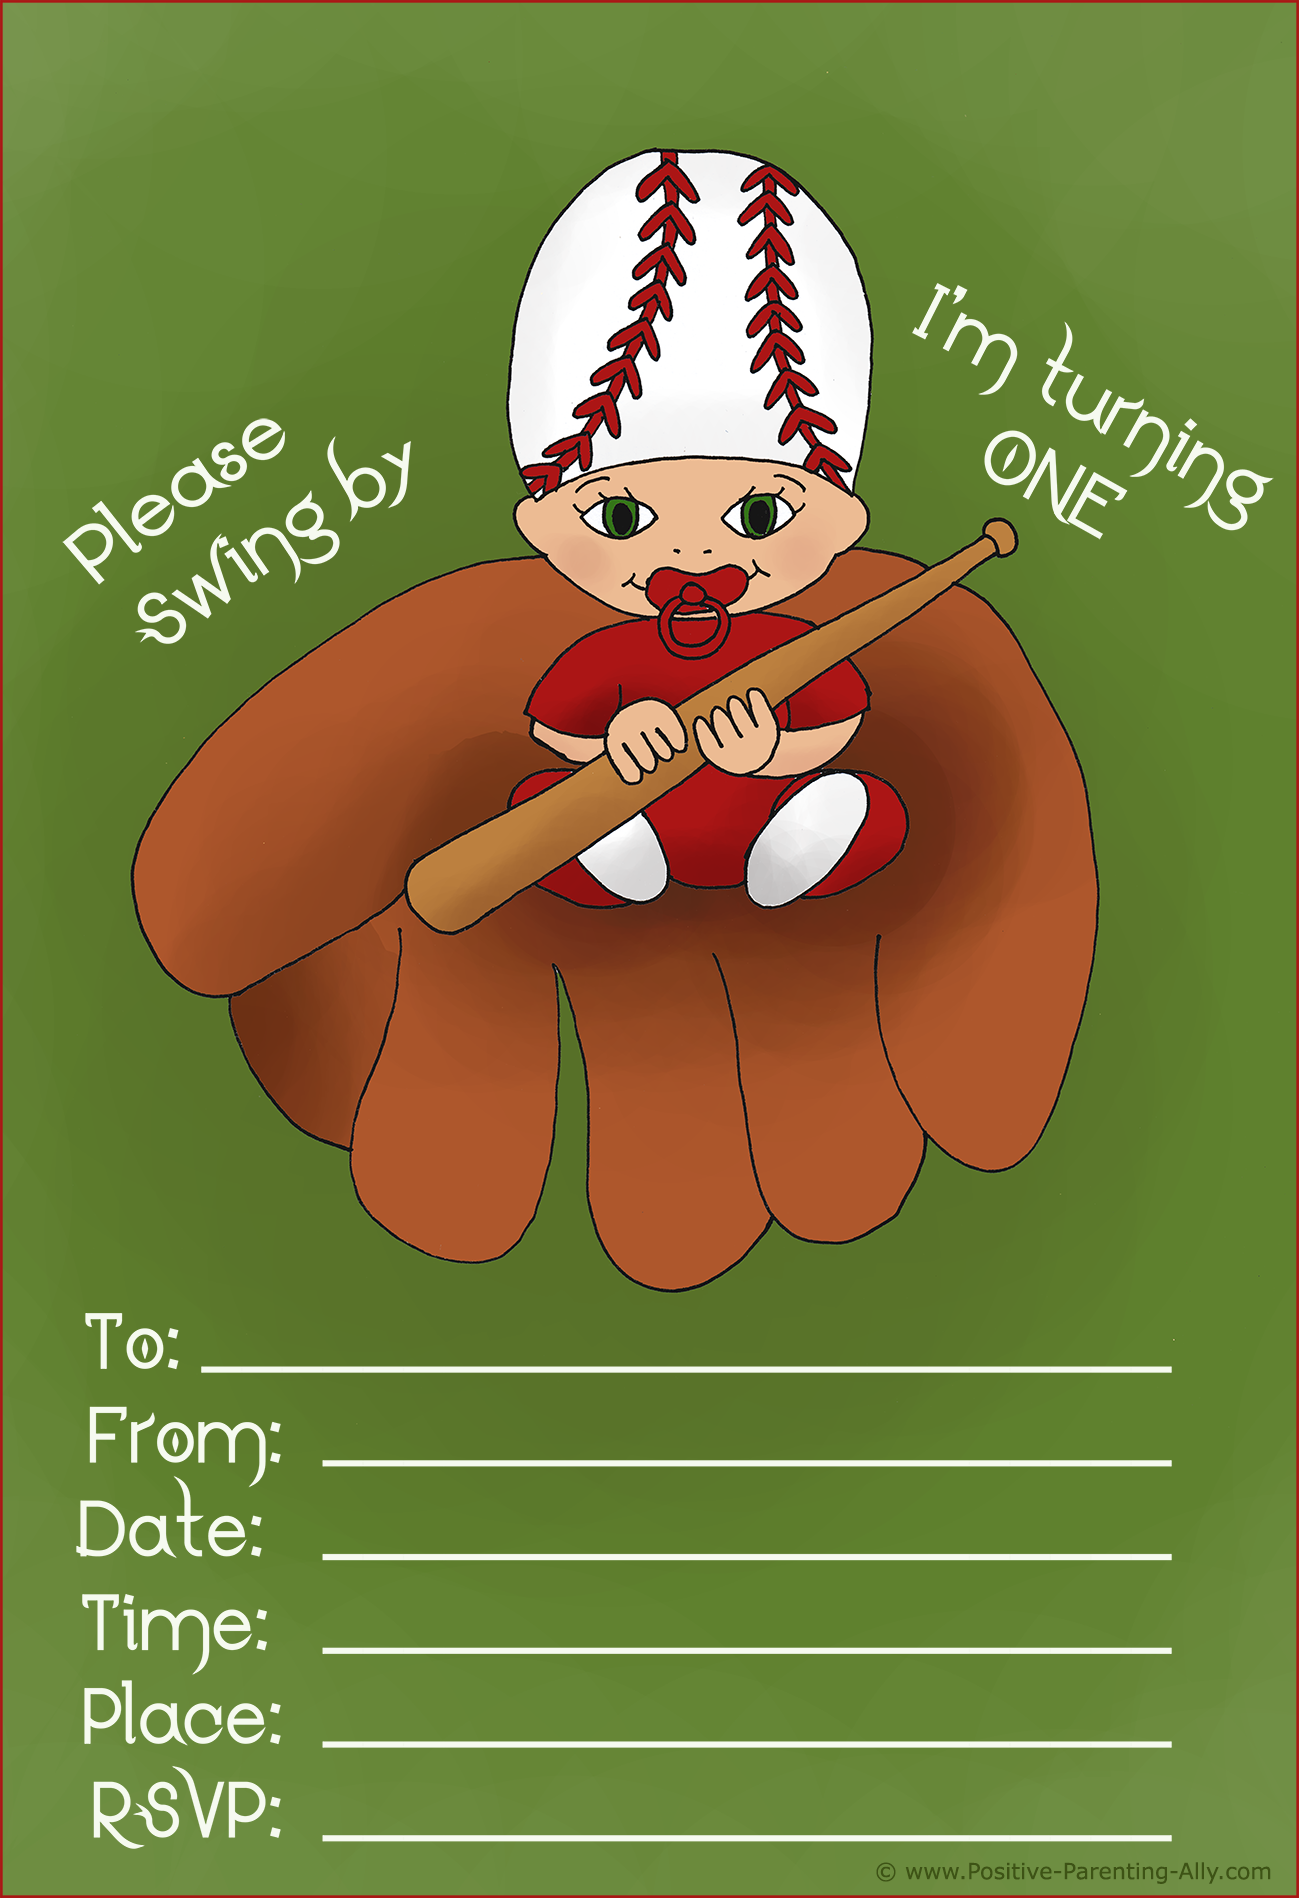 Cute printable baby invite for first birthday - daddy's favorite baseball theme.